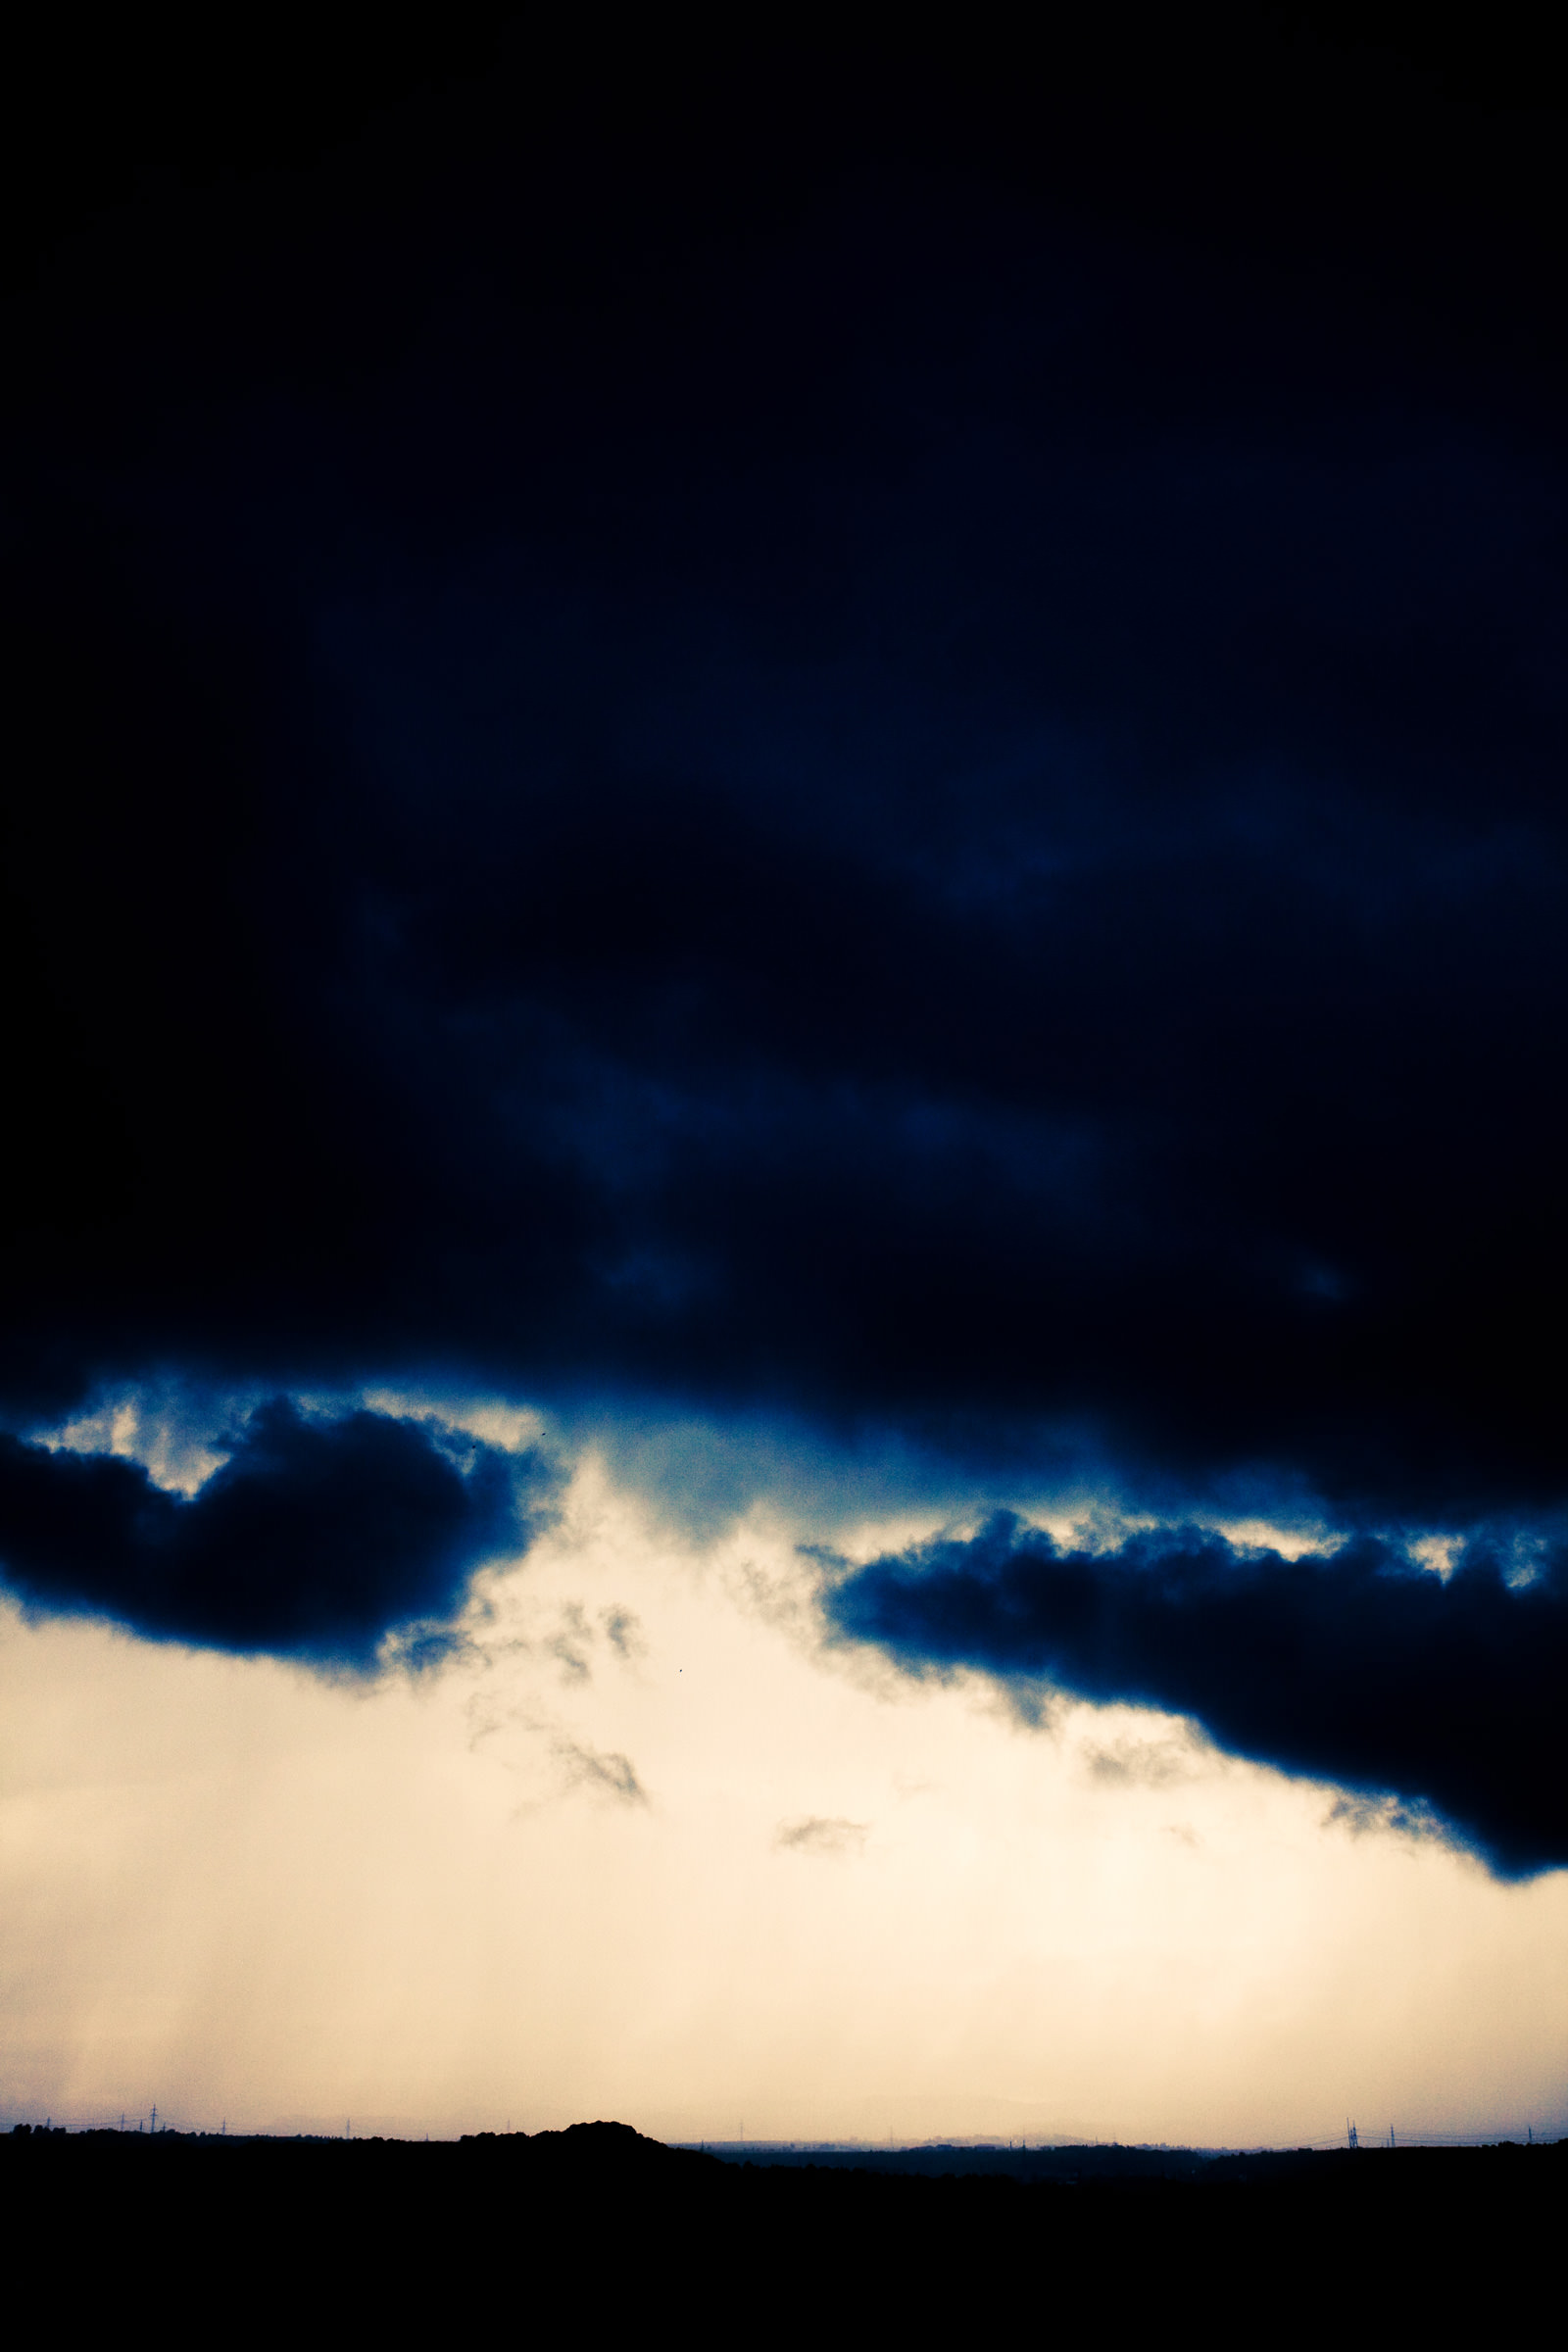 storm is coming 4